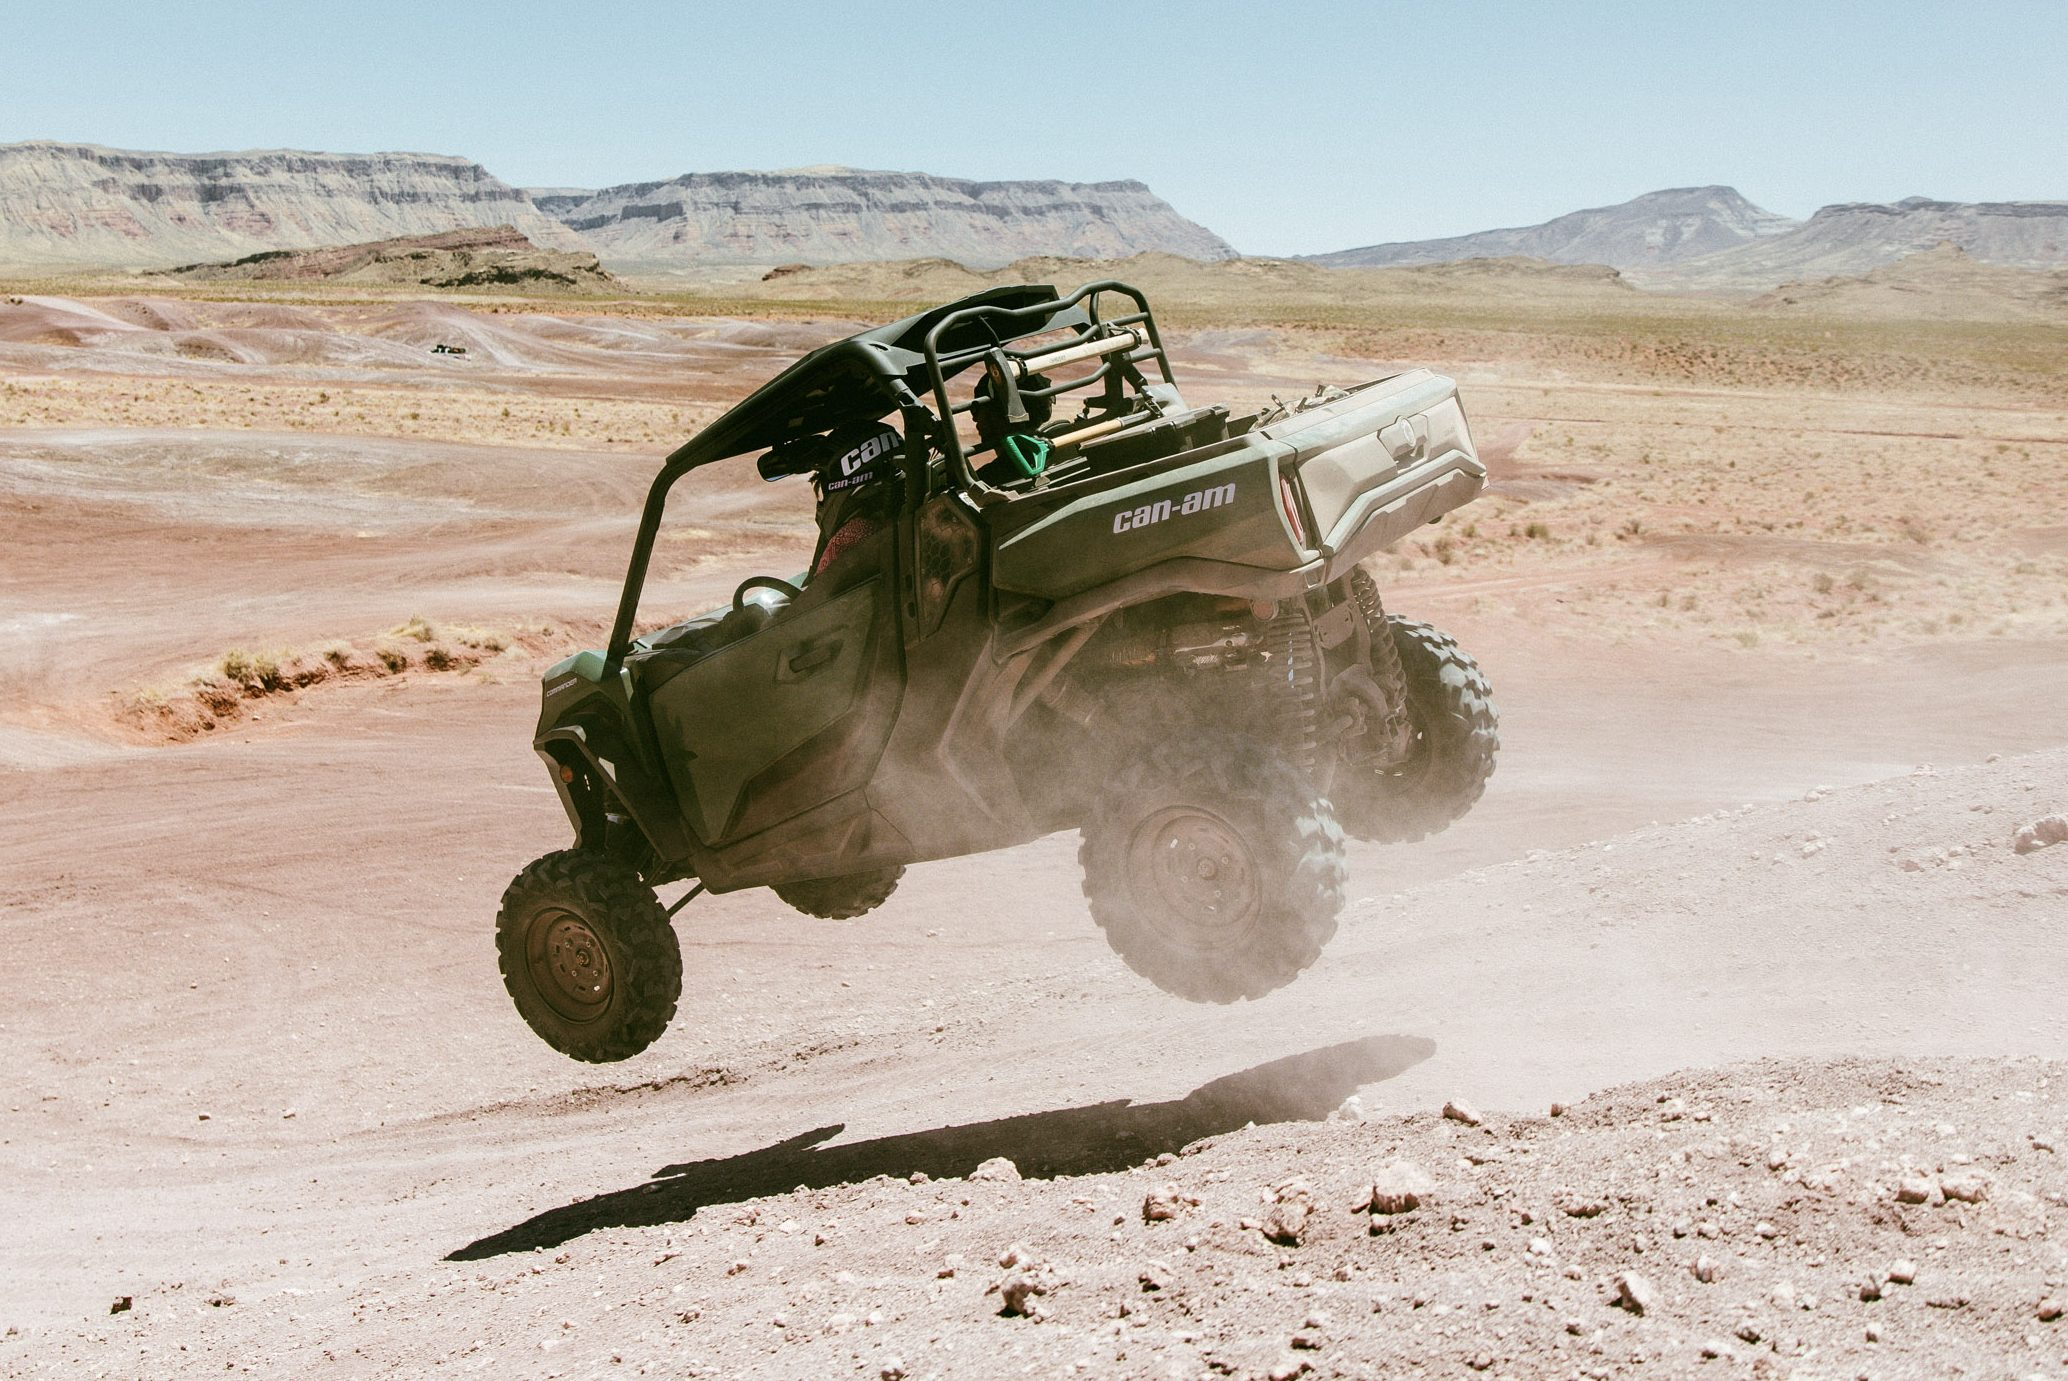 Get Back on Track With the Great American Off-Road Trip